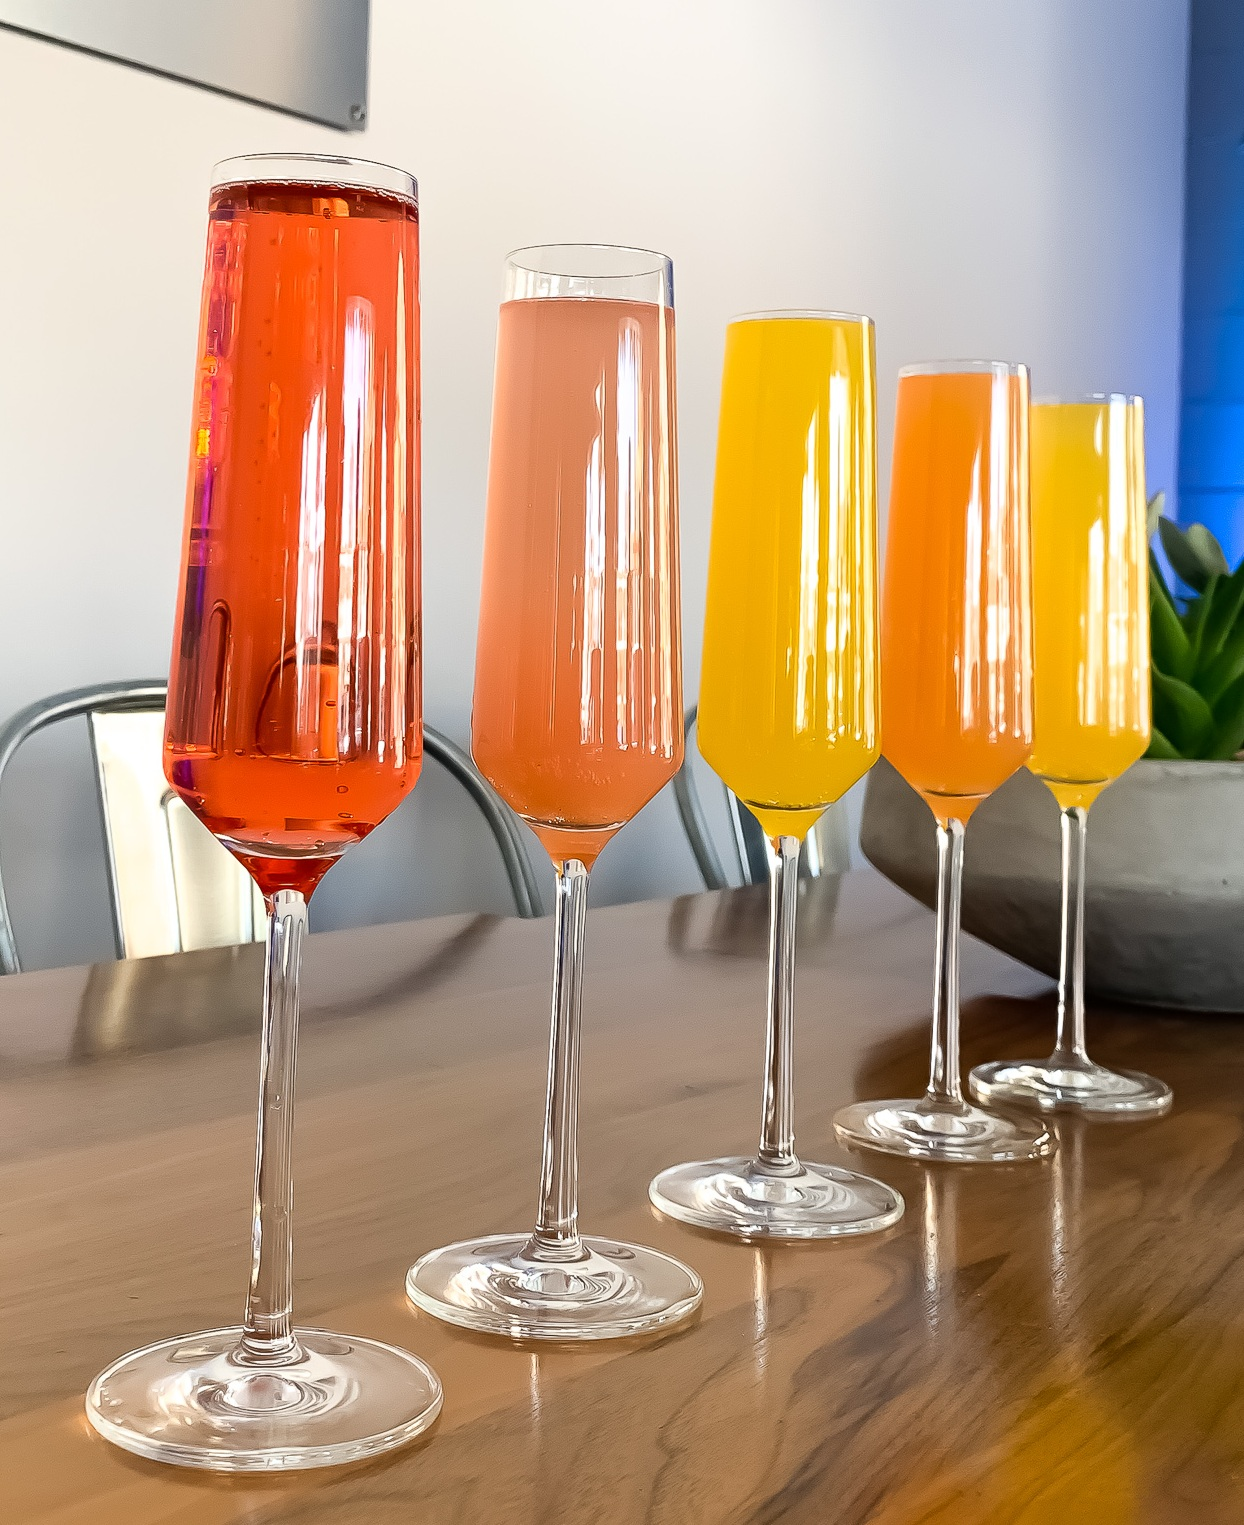 Spring Mimosa Flight - Enjoy delicious flavors all Spring long for a special price!